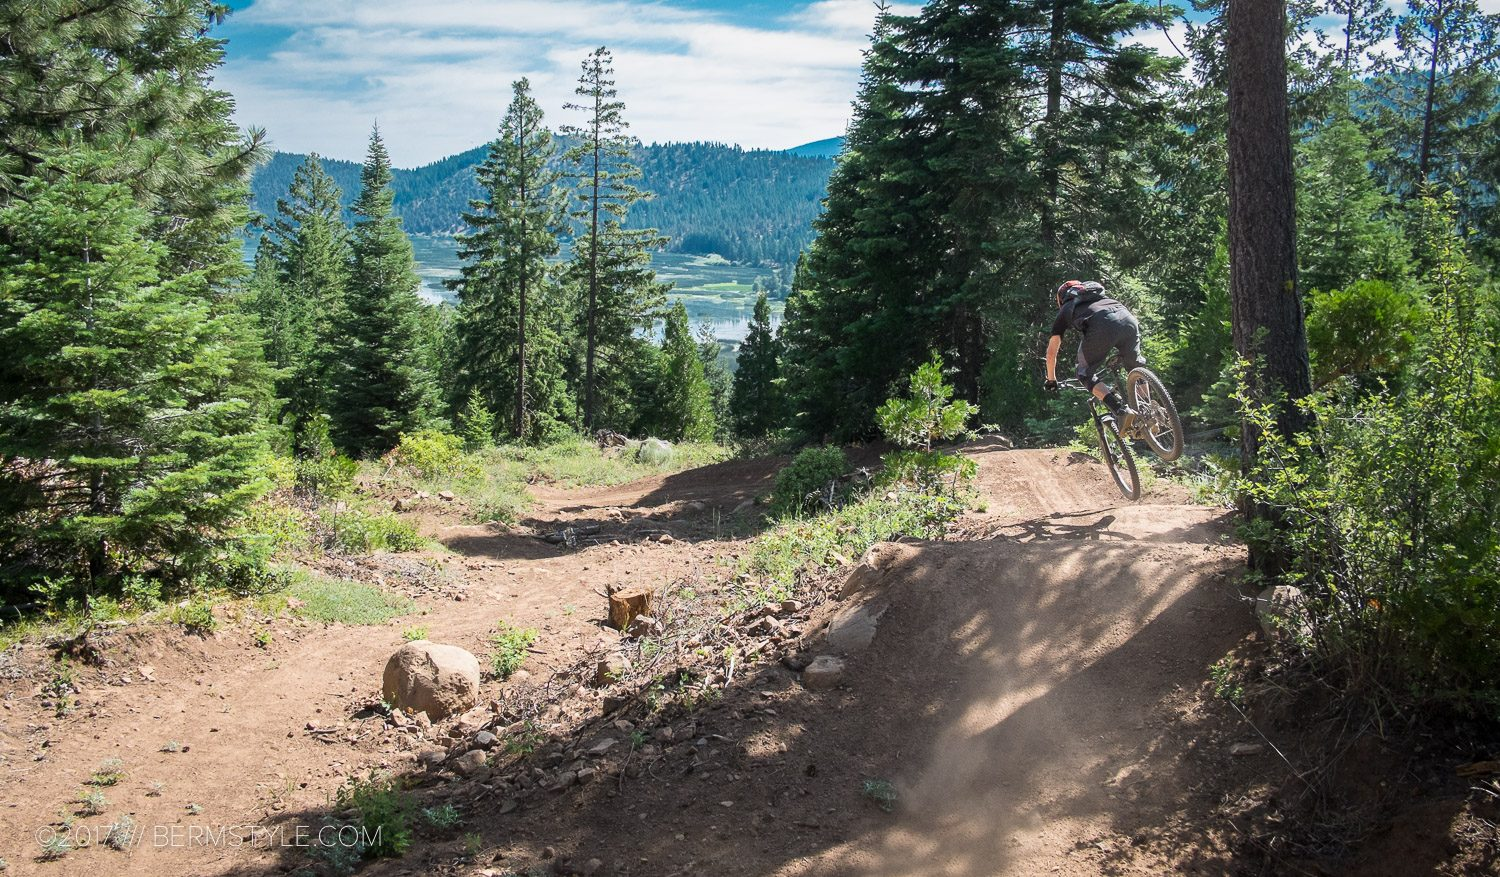 Oregon Ride Destination: Spence Mountain, Klamath Falls